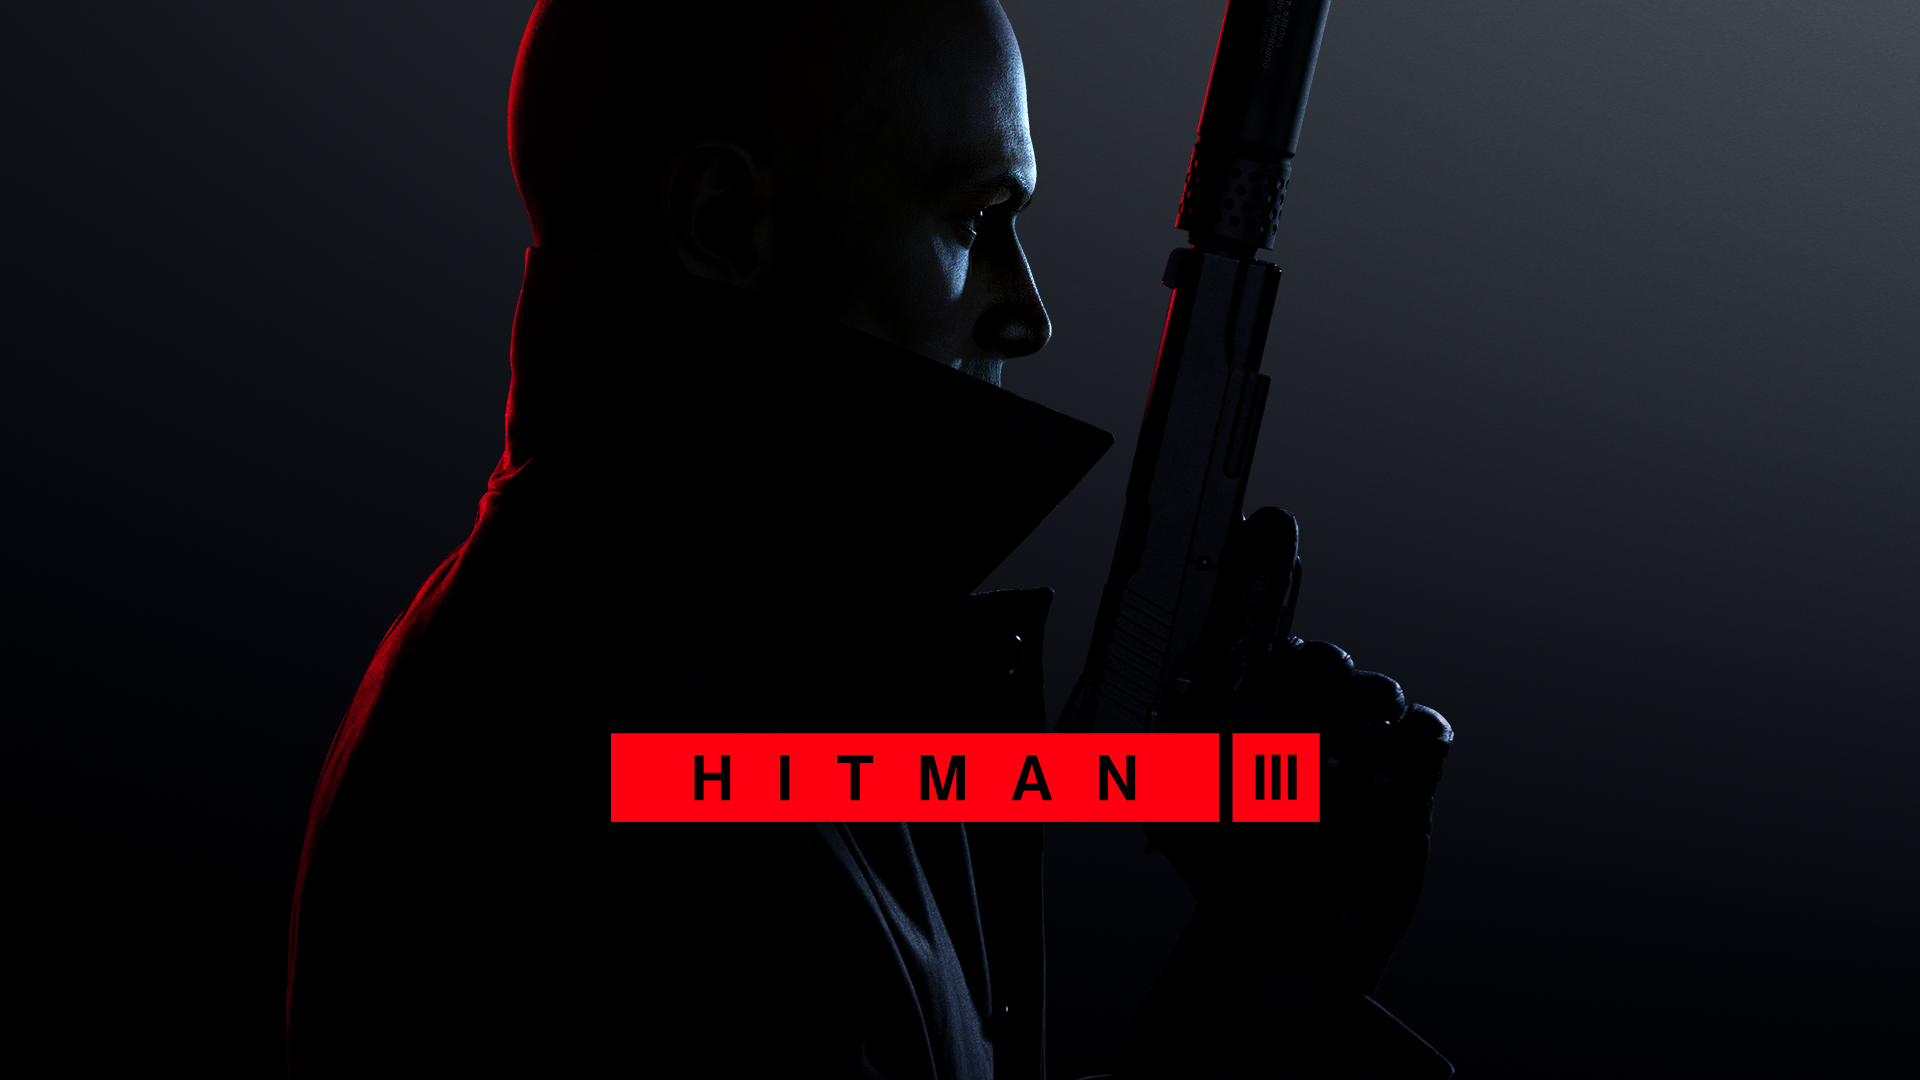 Hitman 3 January 2021 video game releases